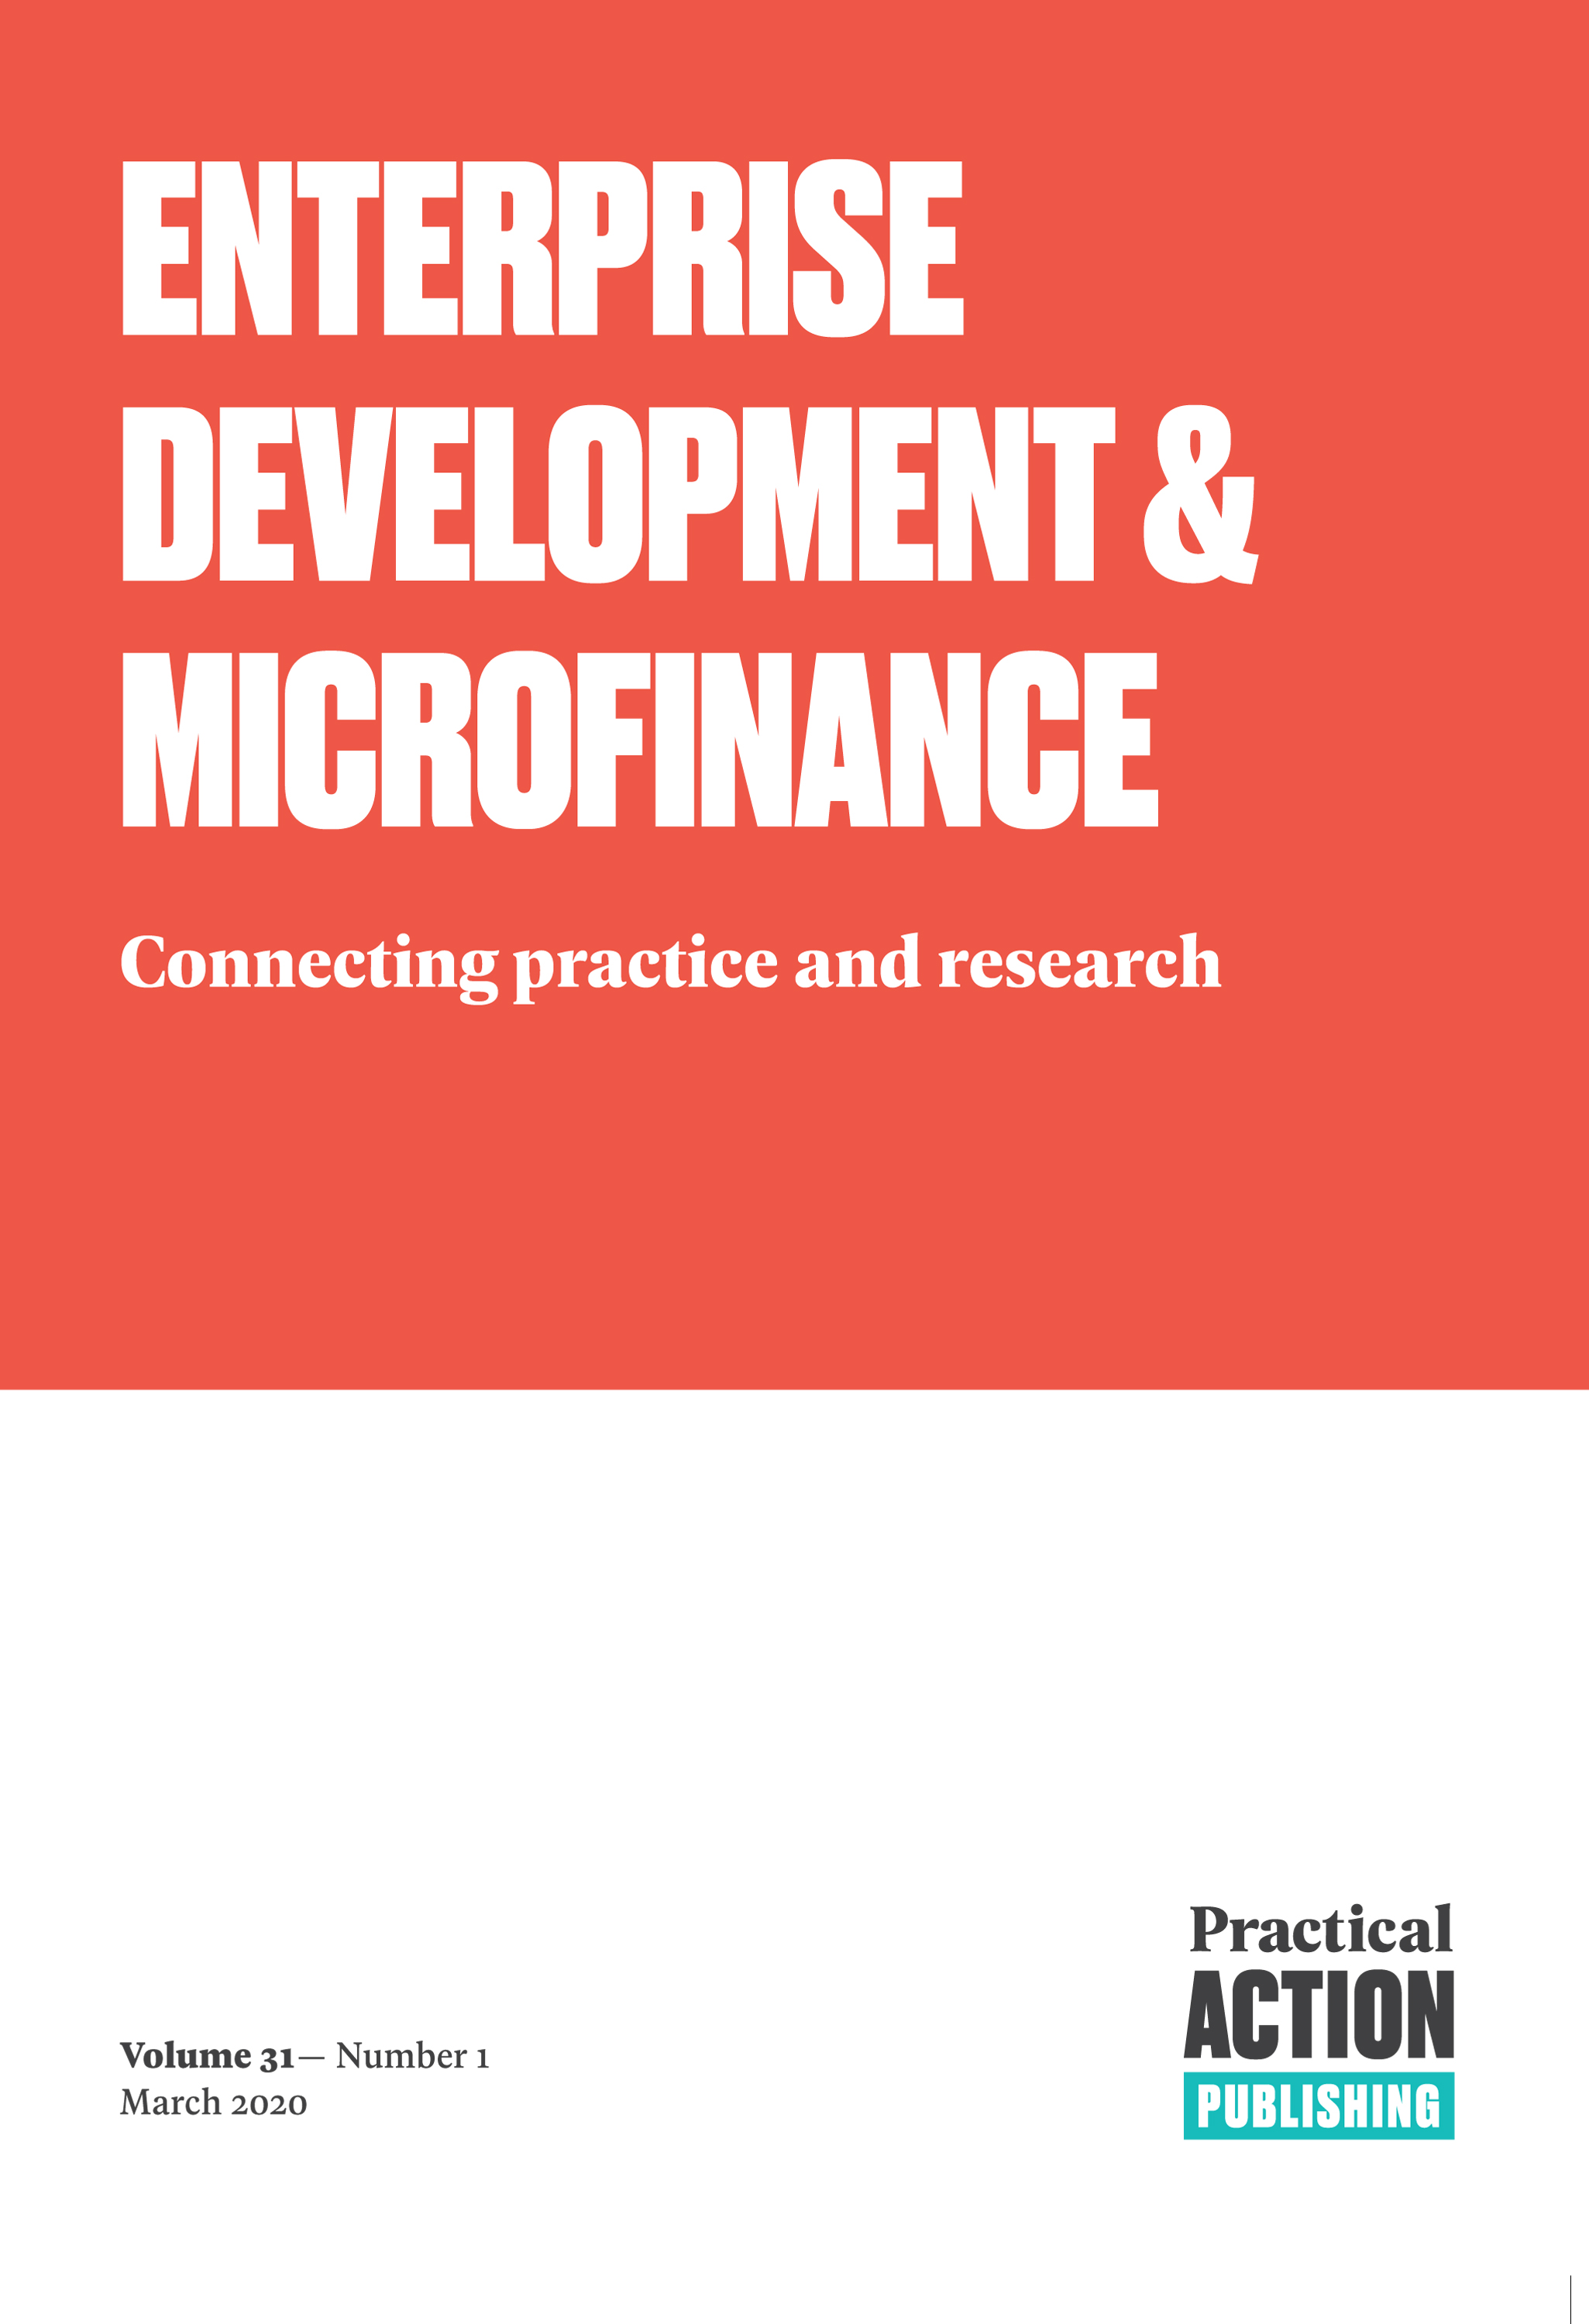 Enterprise Development and Microfinance